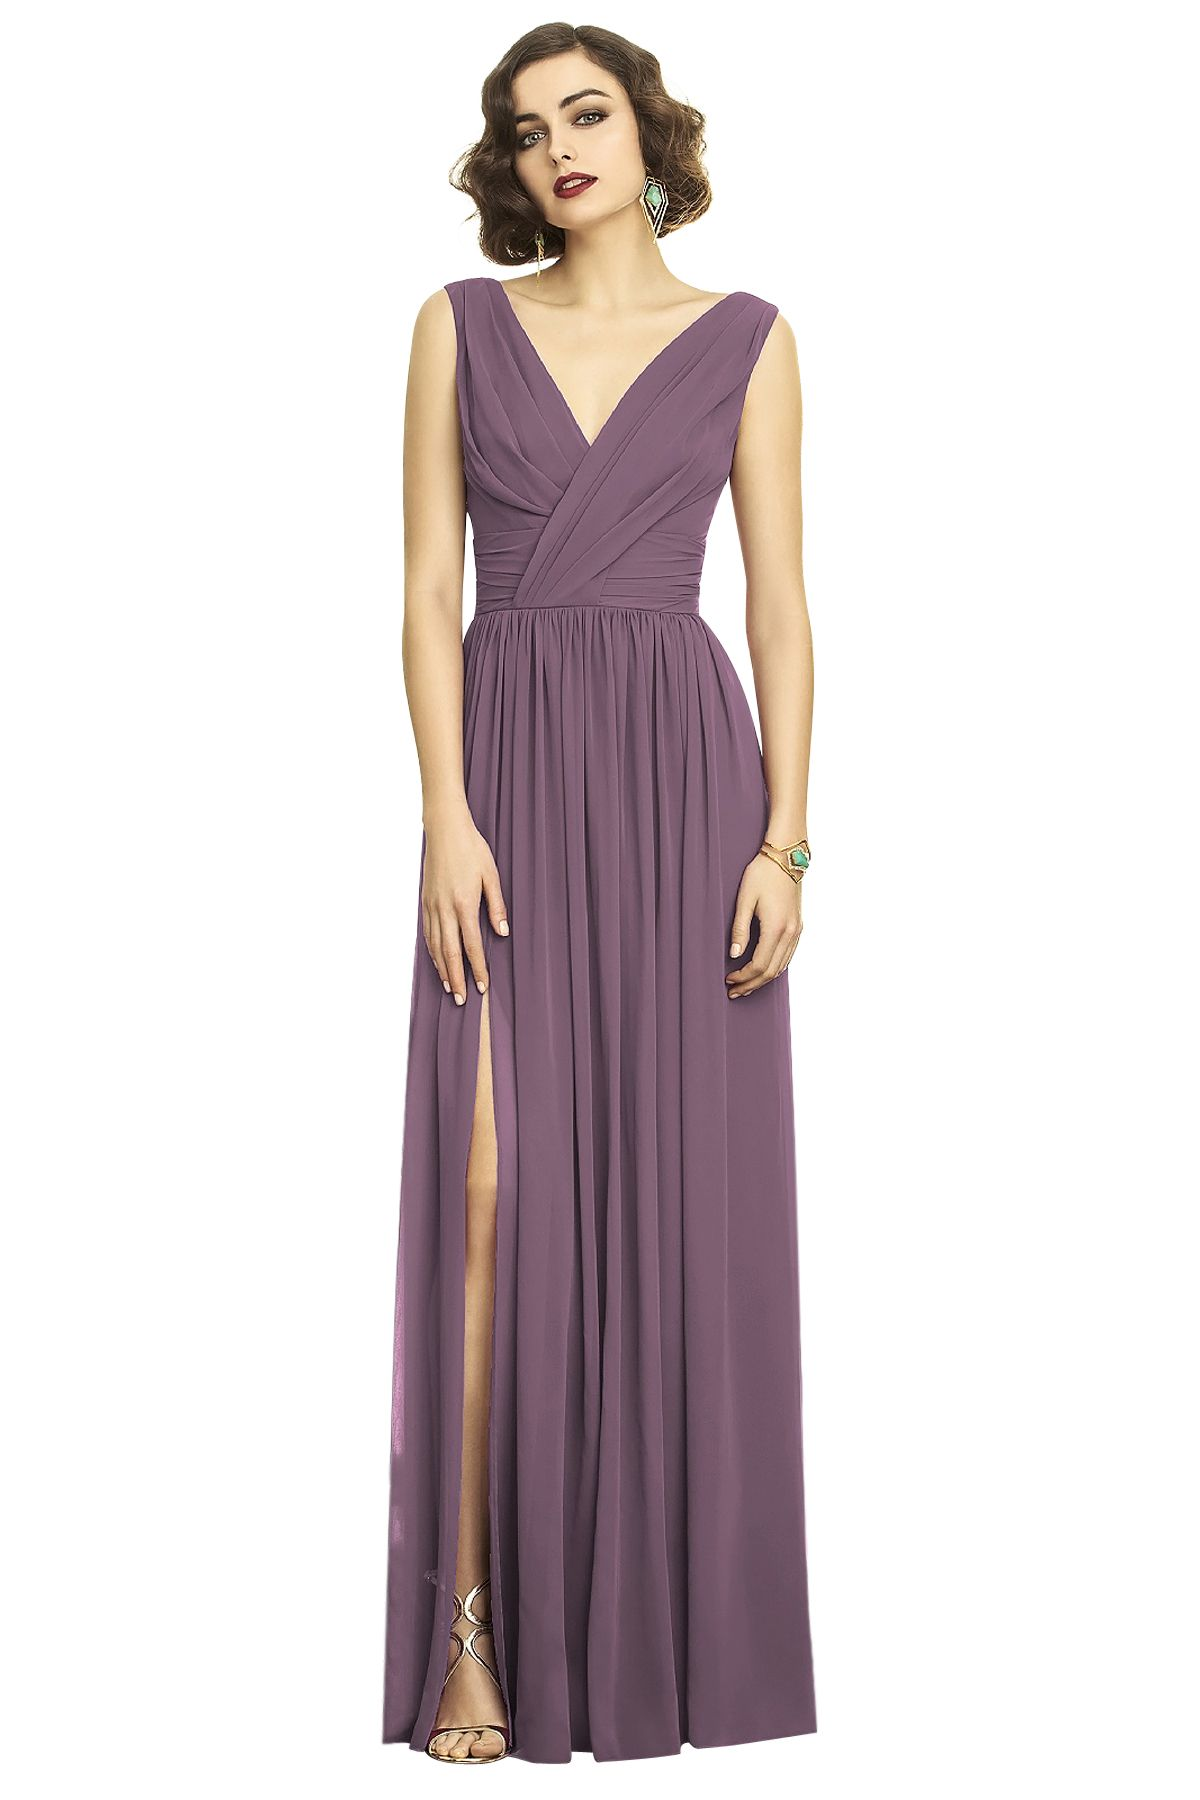 Dessy 2894 Bridesmaid Dress in Plum in Chiffon | Apartment | Pinterest